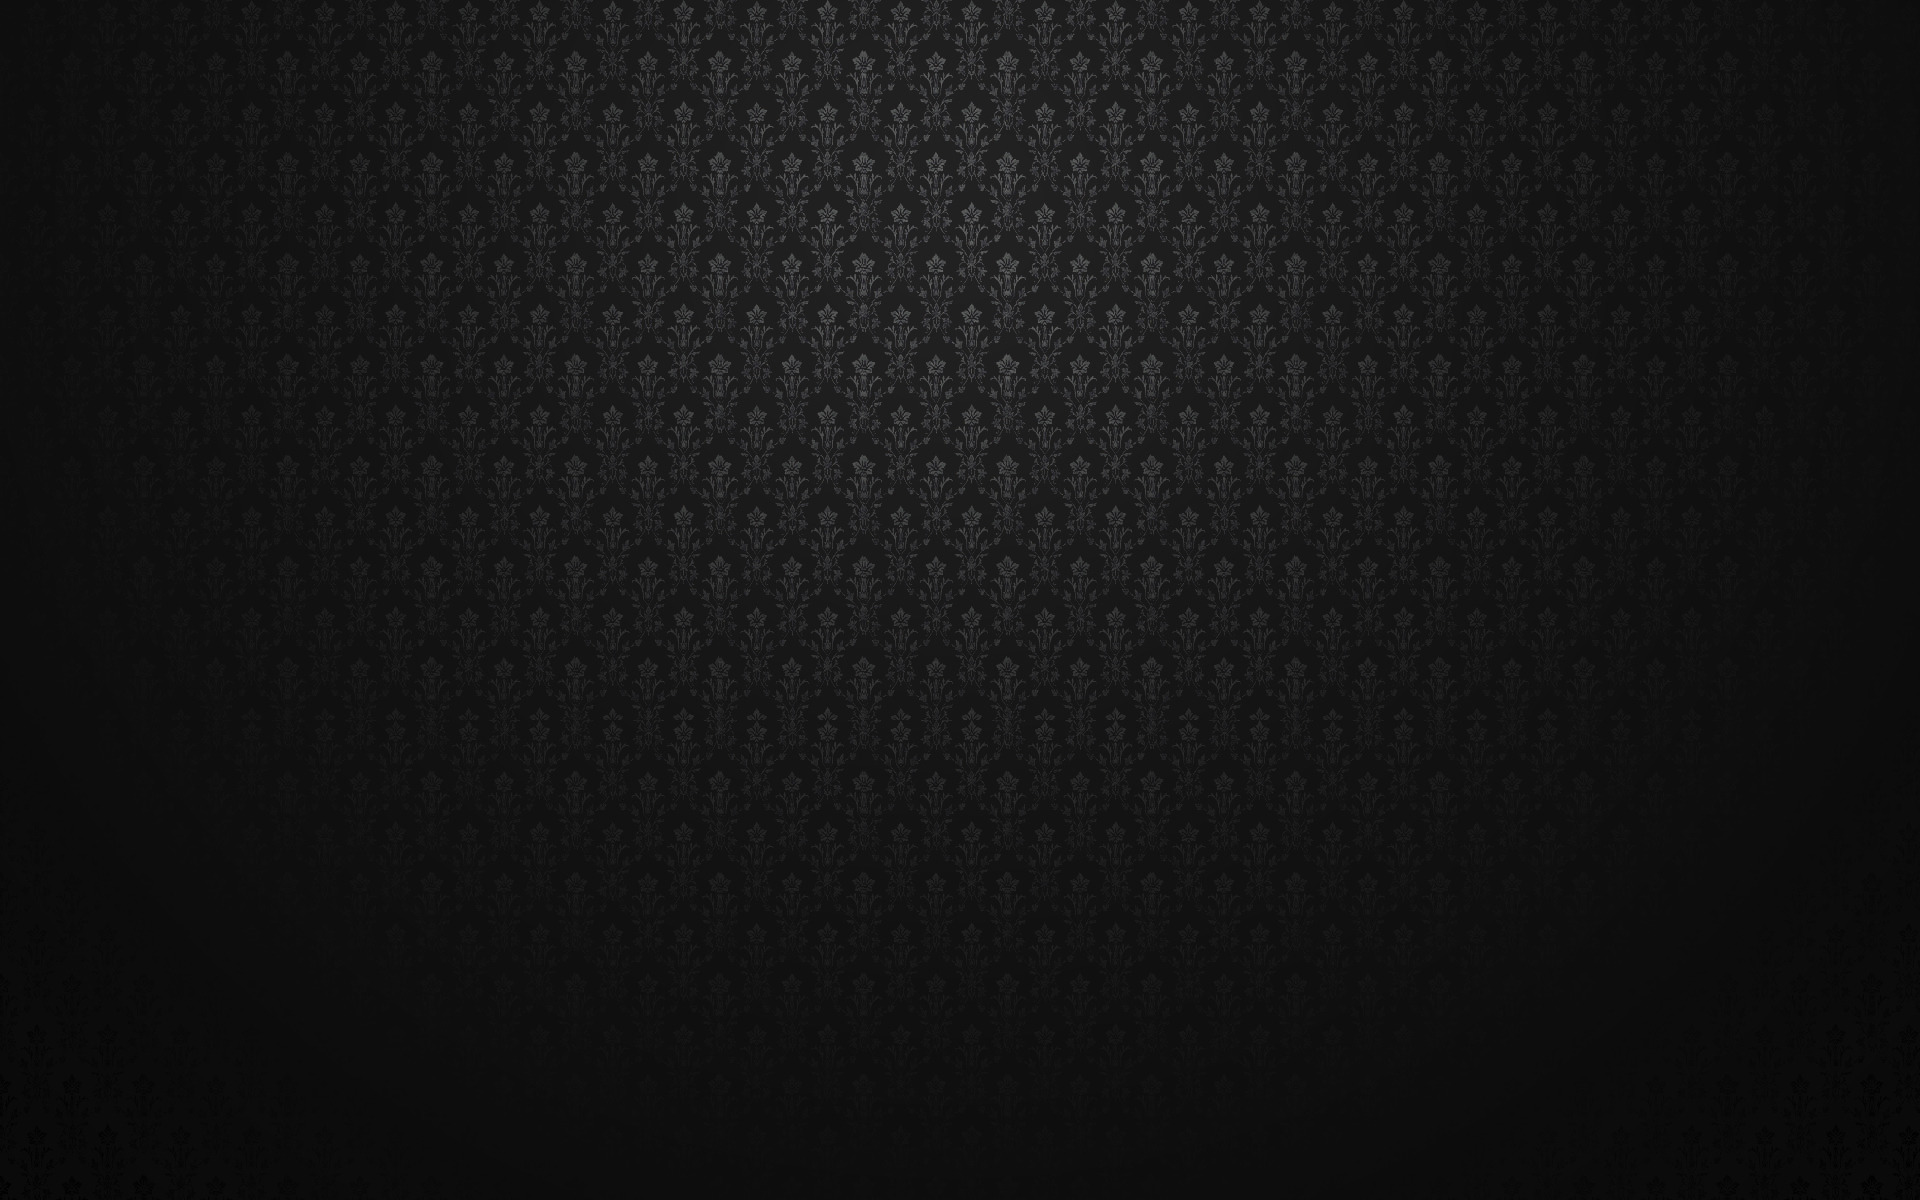 3d Wallpaper For Nexus 5 Black Earth Wallpaper 41 Background Hdblackwallpaper Com